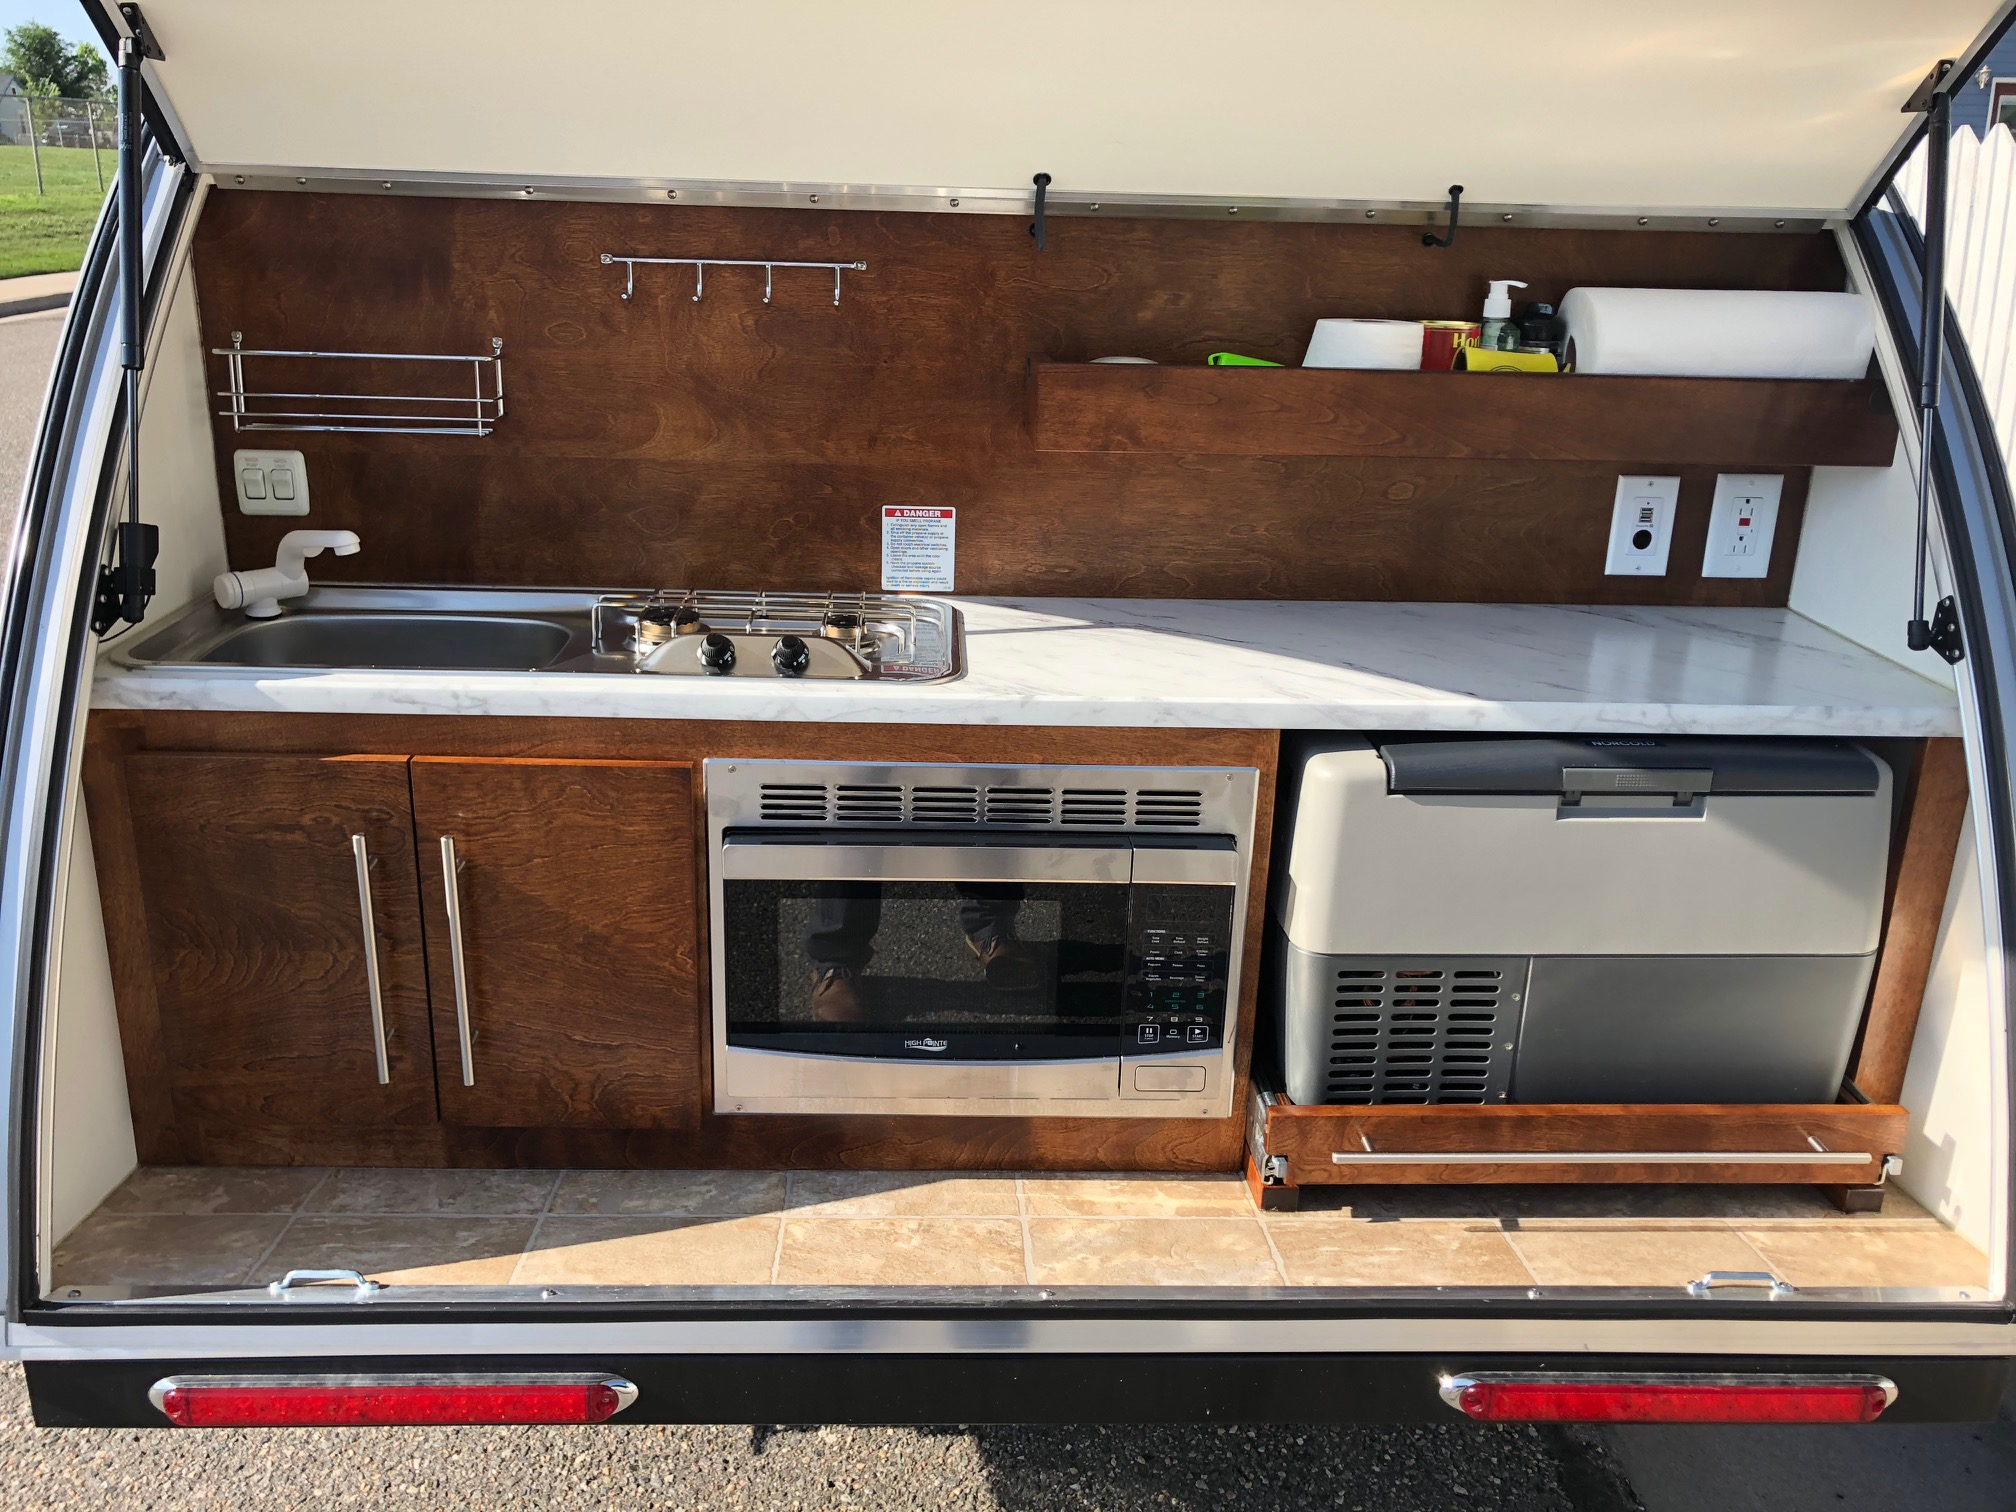 Sink, refrigerator and microwave